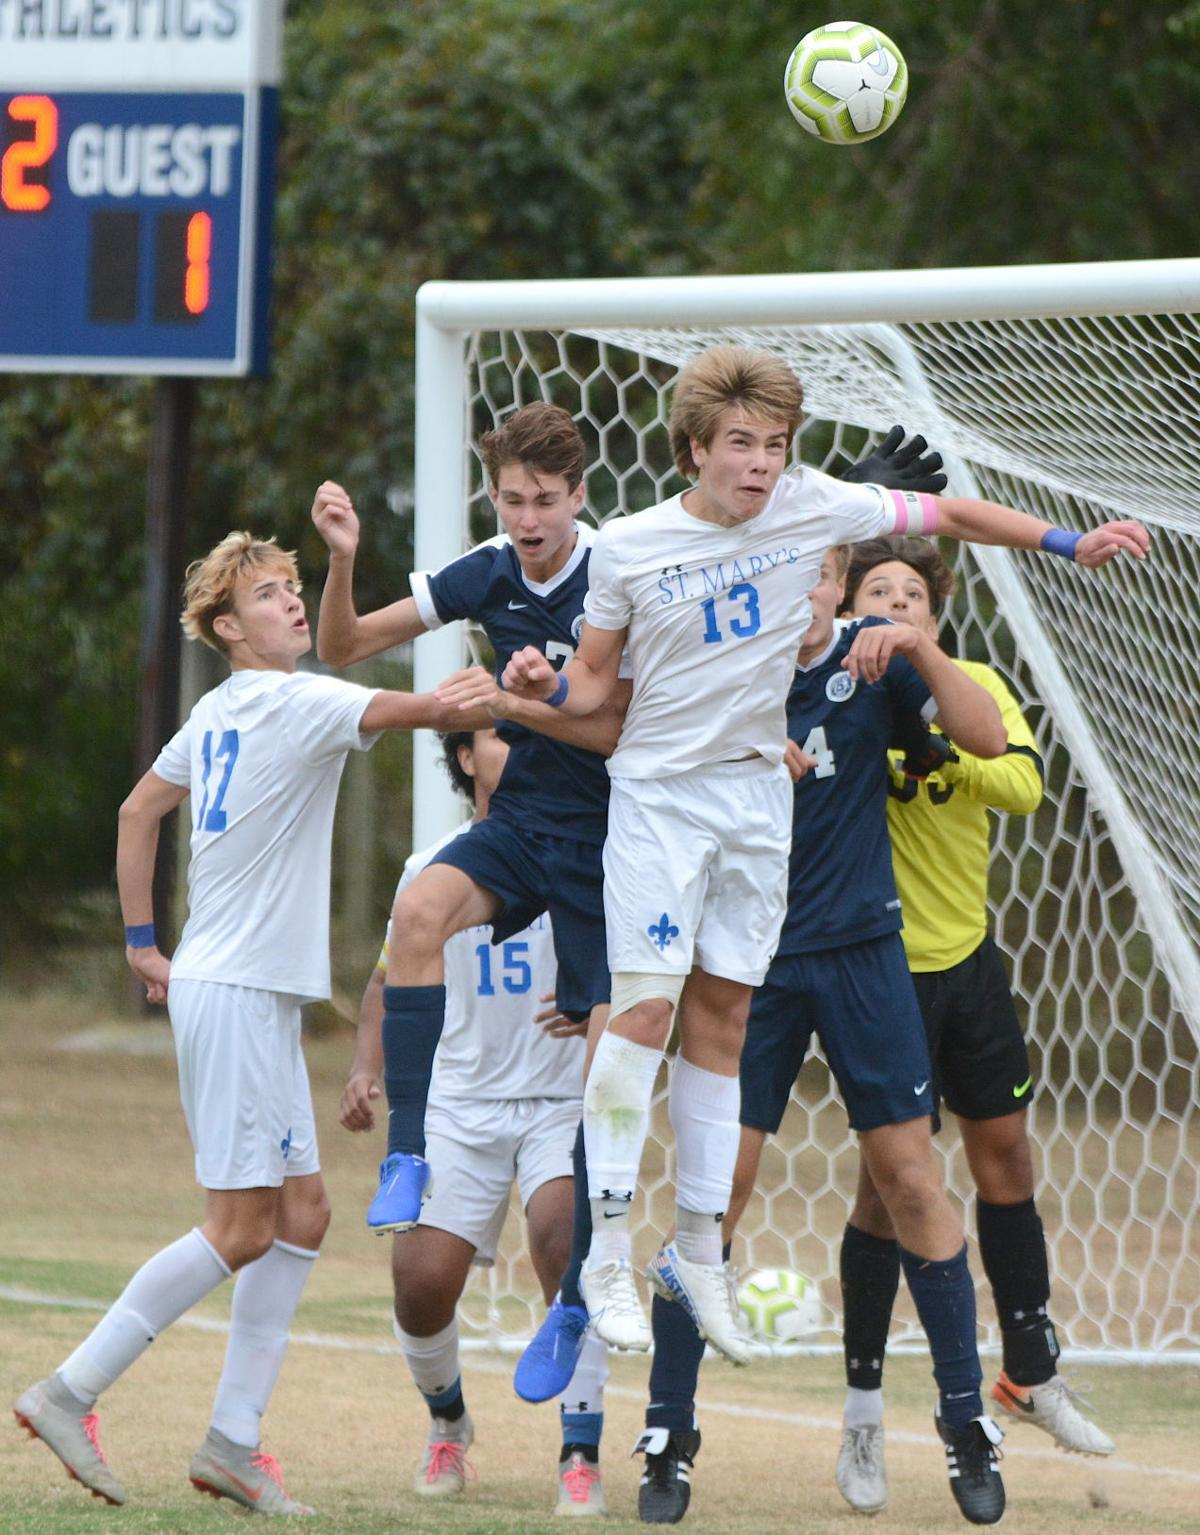 SSPP-ST. MARY'S SOCCER 19